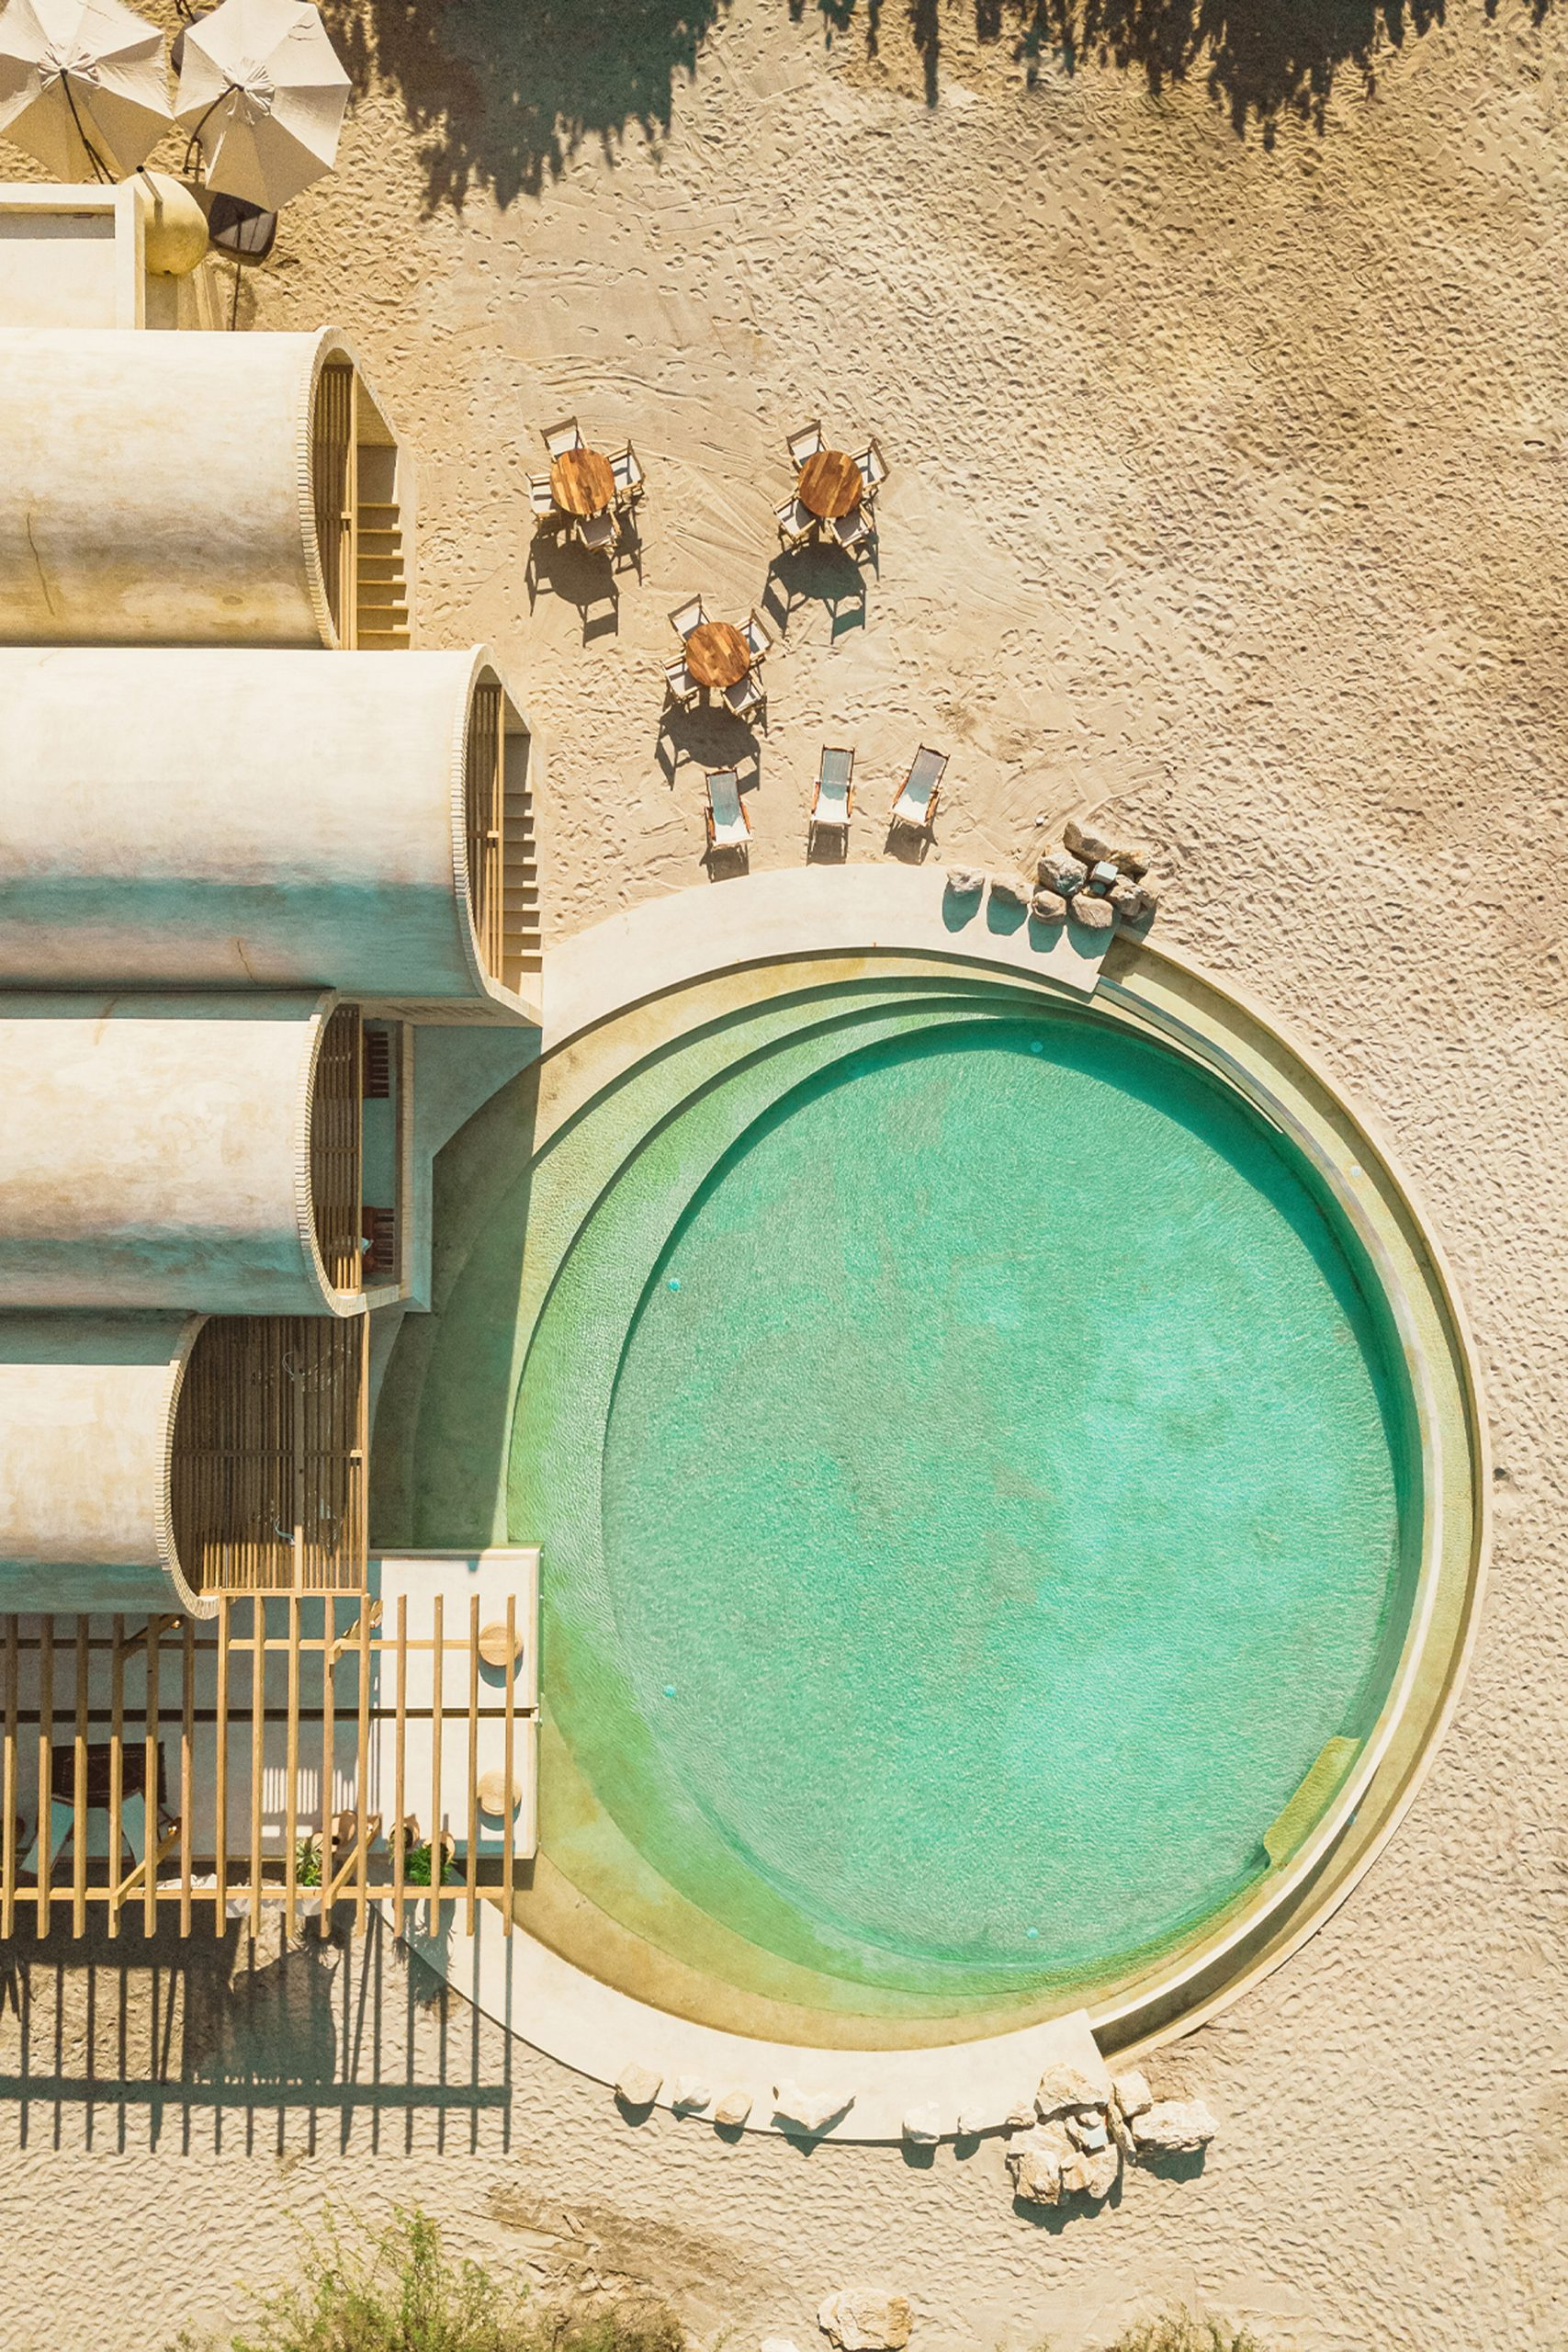 Architect Alberto Kalach built a circular swimming pool in the hotel's grounds